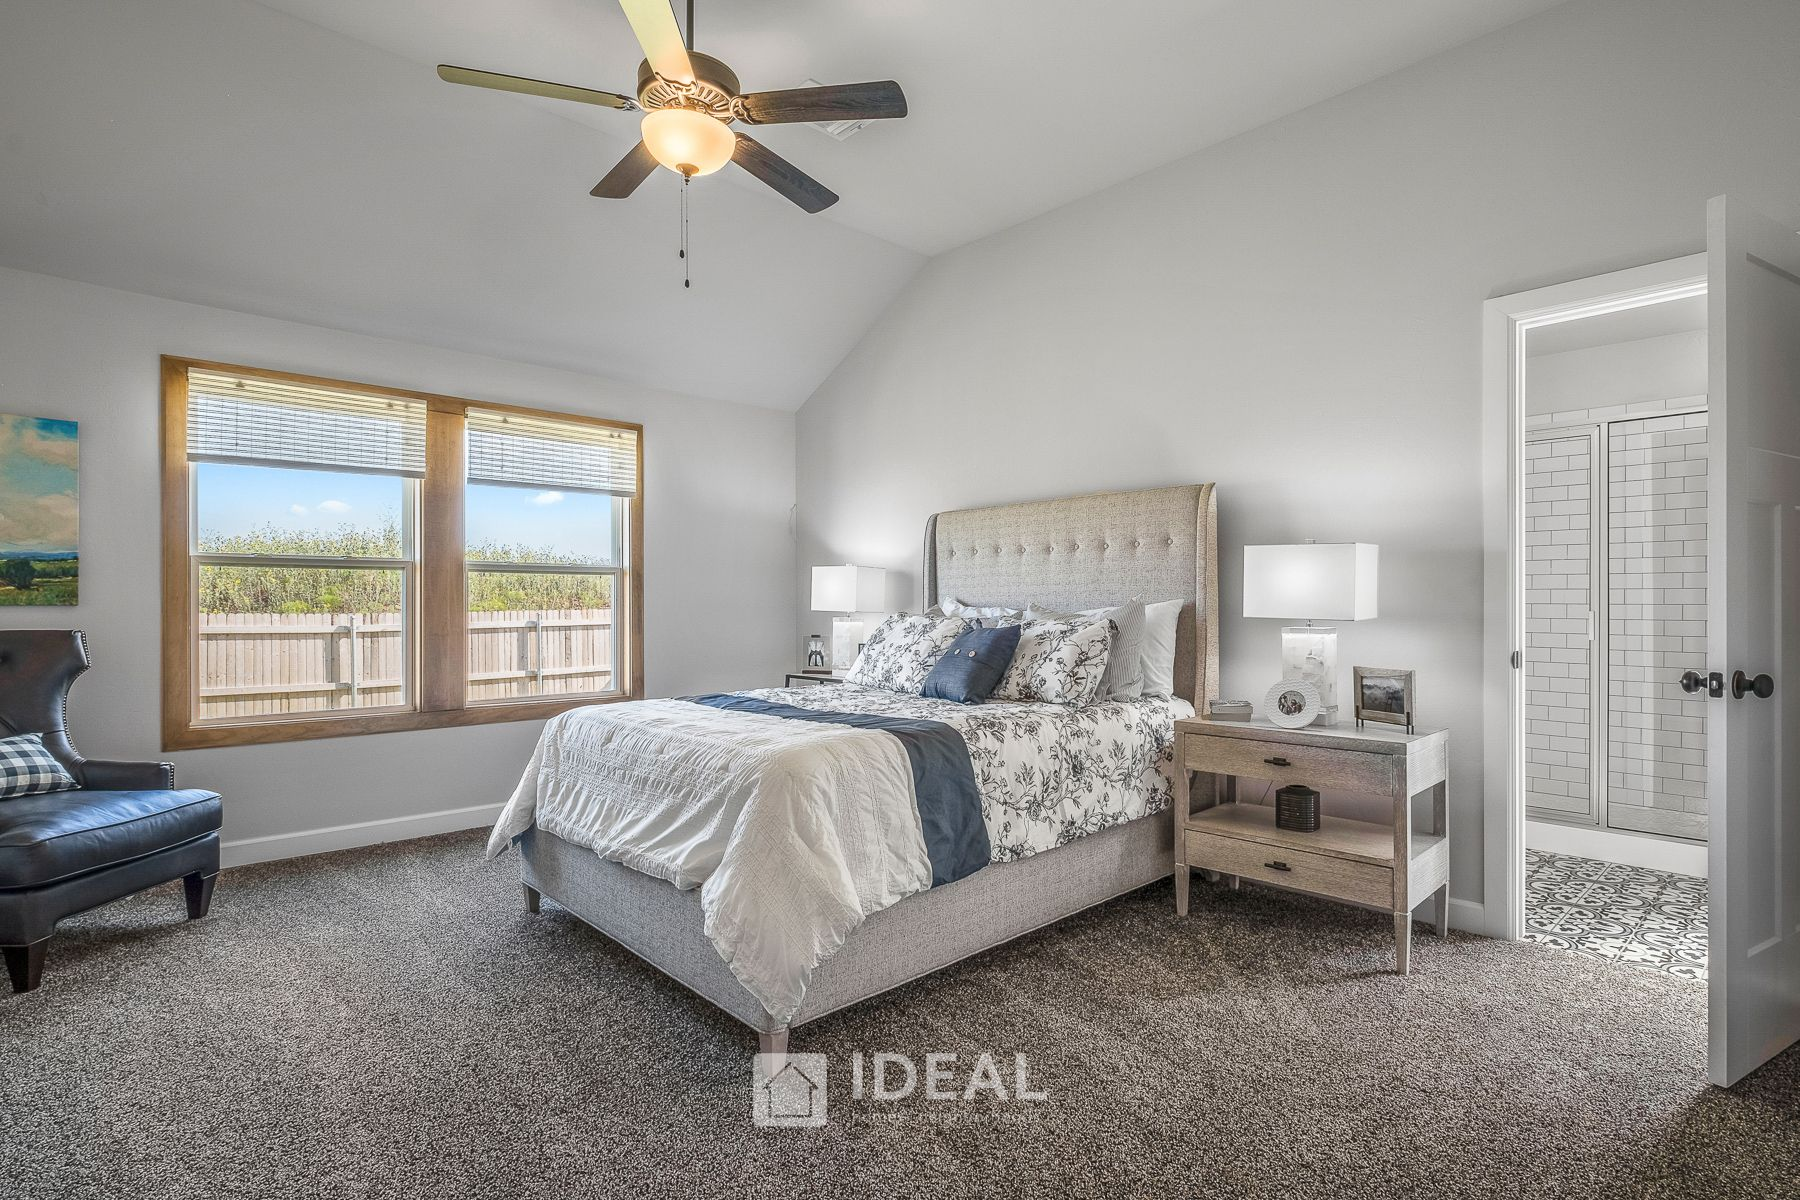 Bedroom featured in the Murphy By Ideal Homes in Oklahoma City, OK